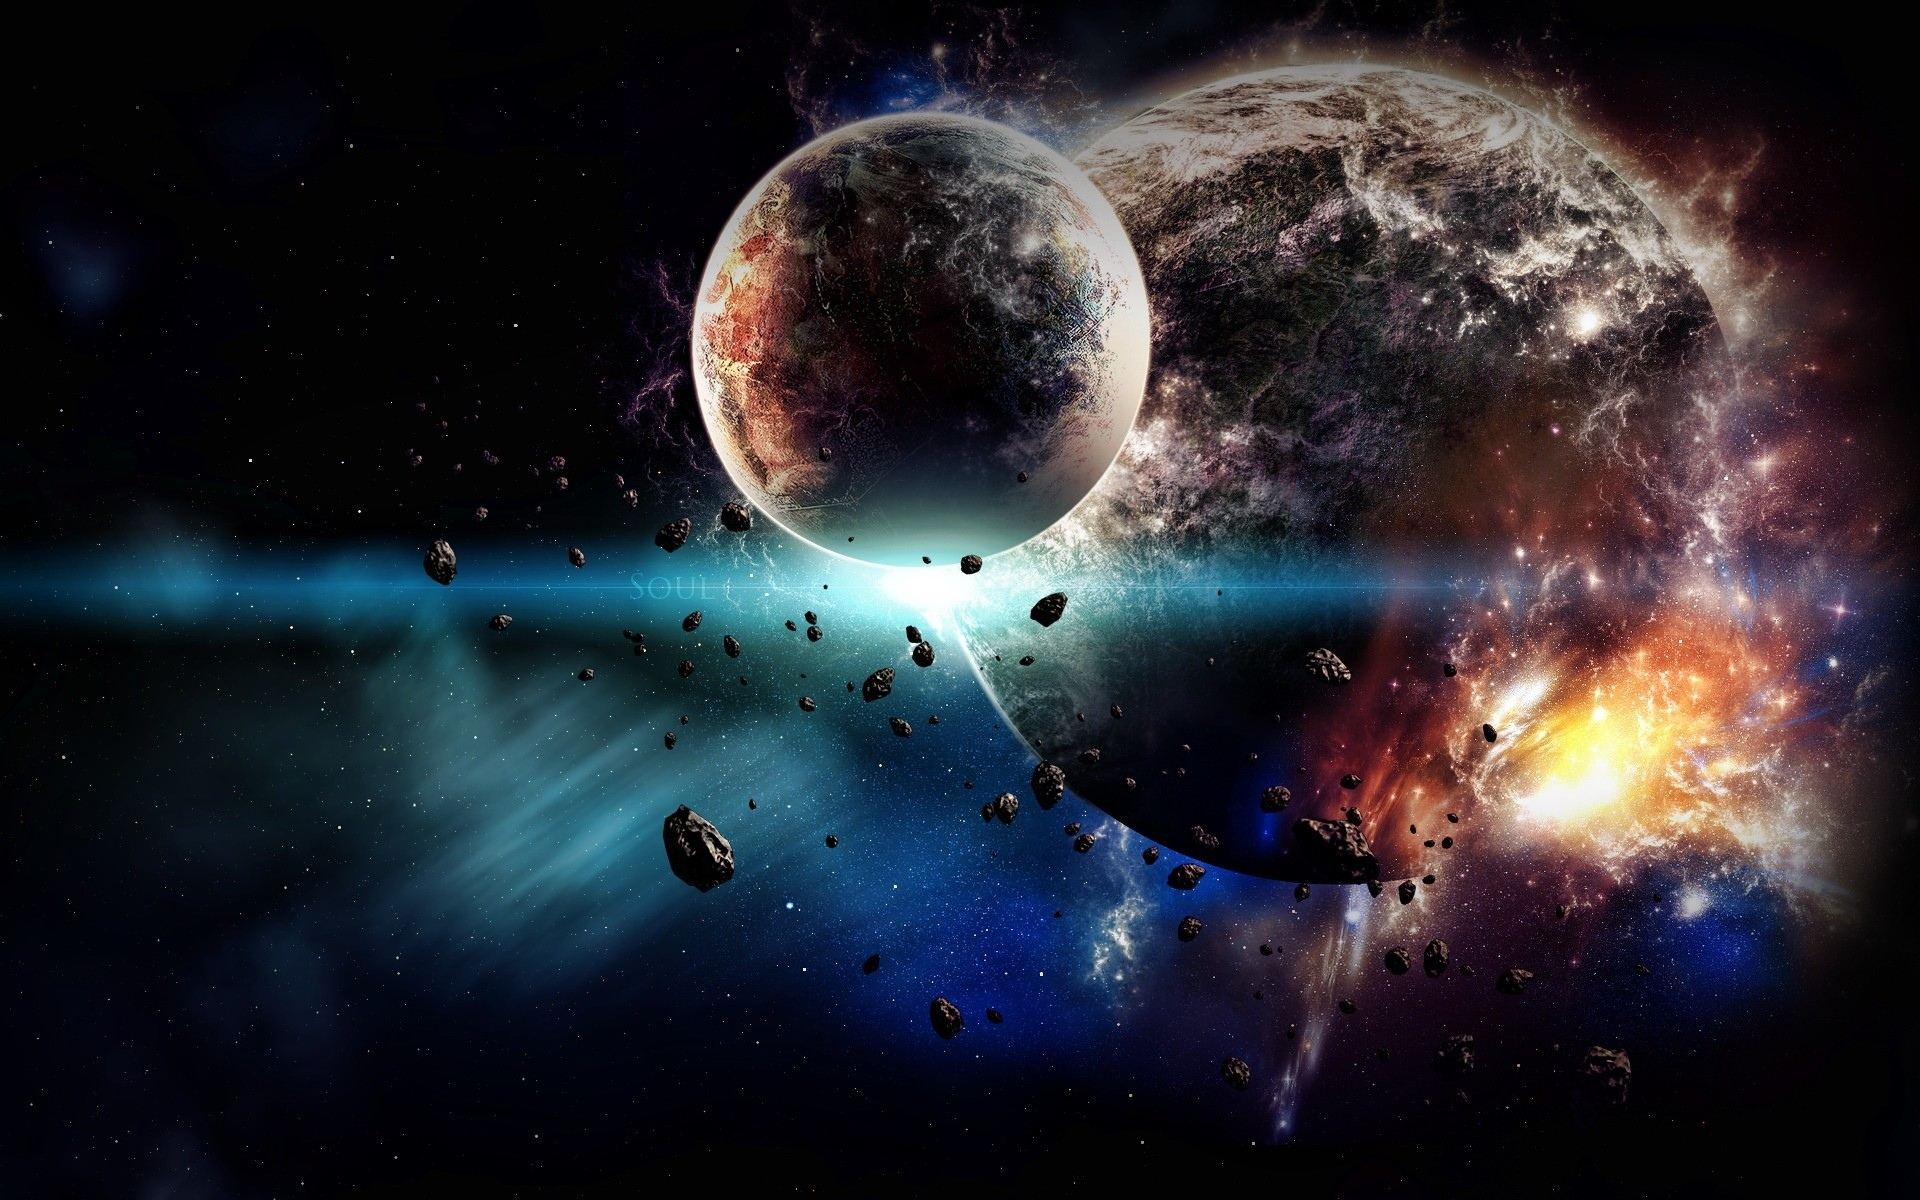 3d Planets And Stars Wallpaper - Pics about space